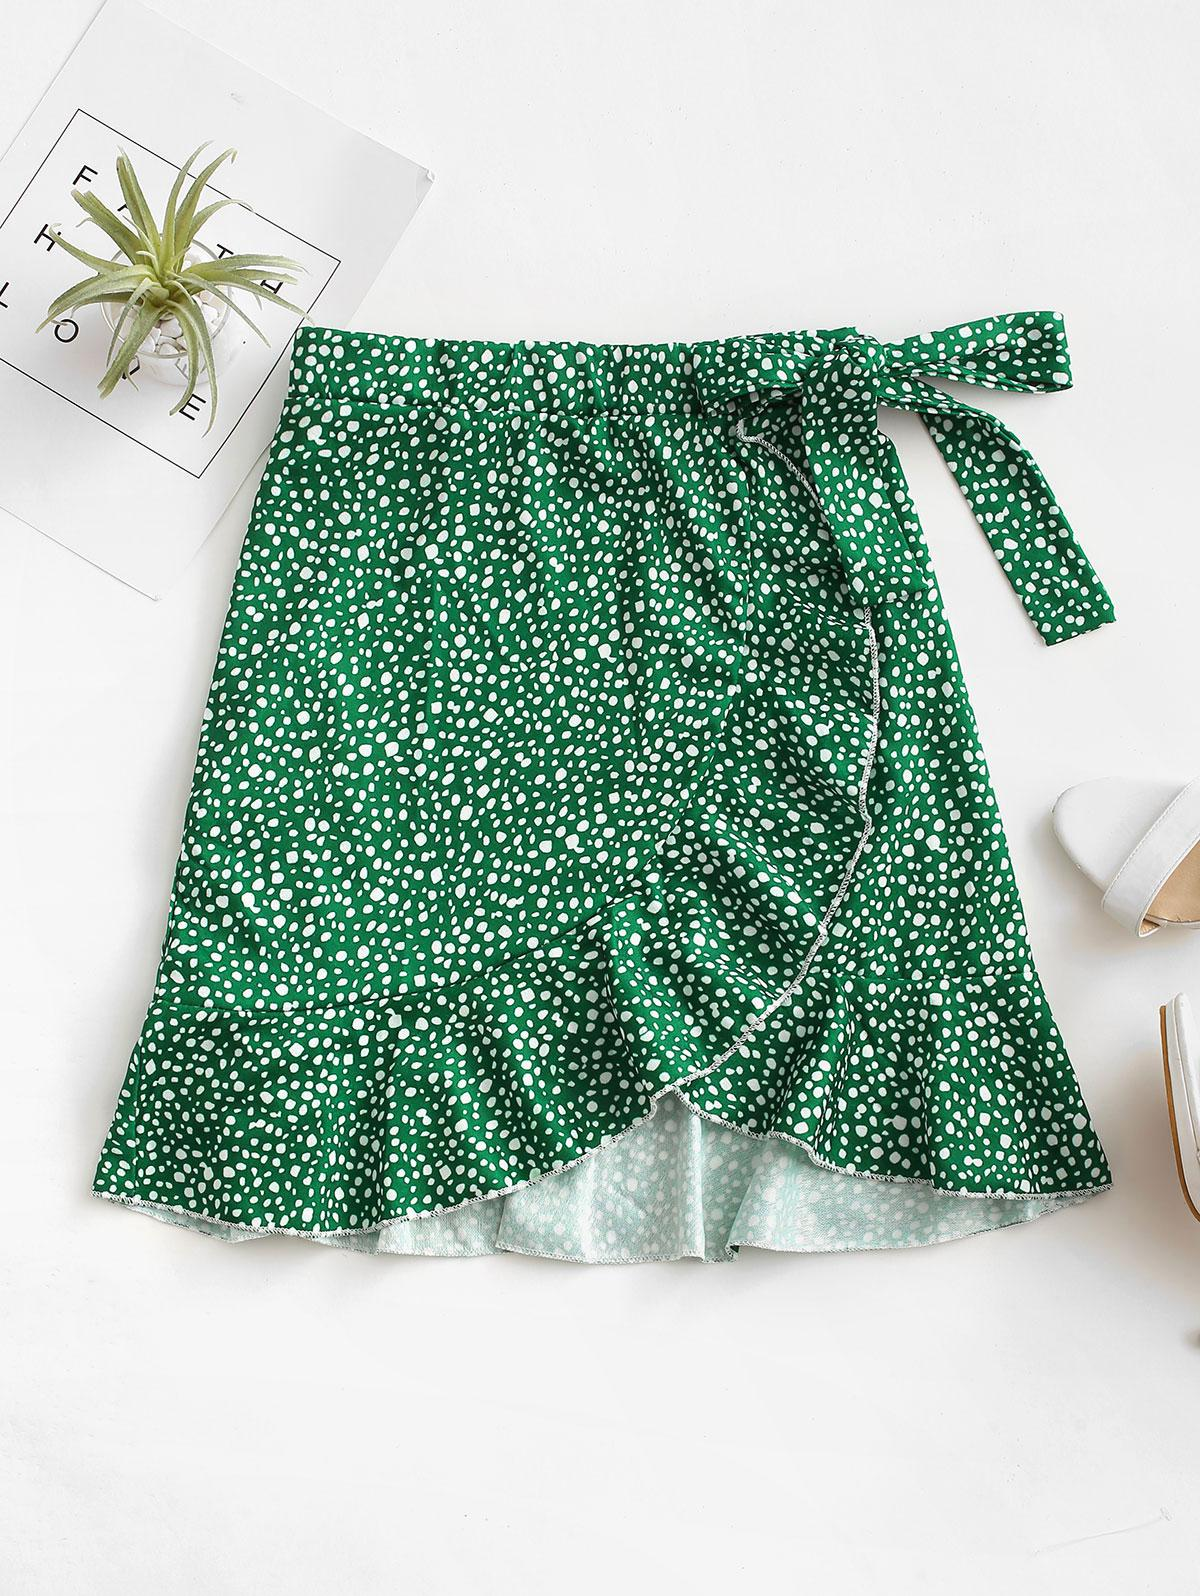 Leopard Speckled Floral Ruffles Knotted Mini Skirt